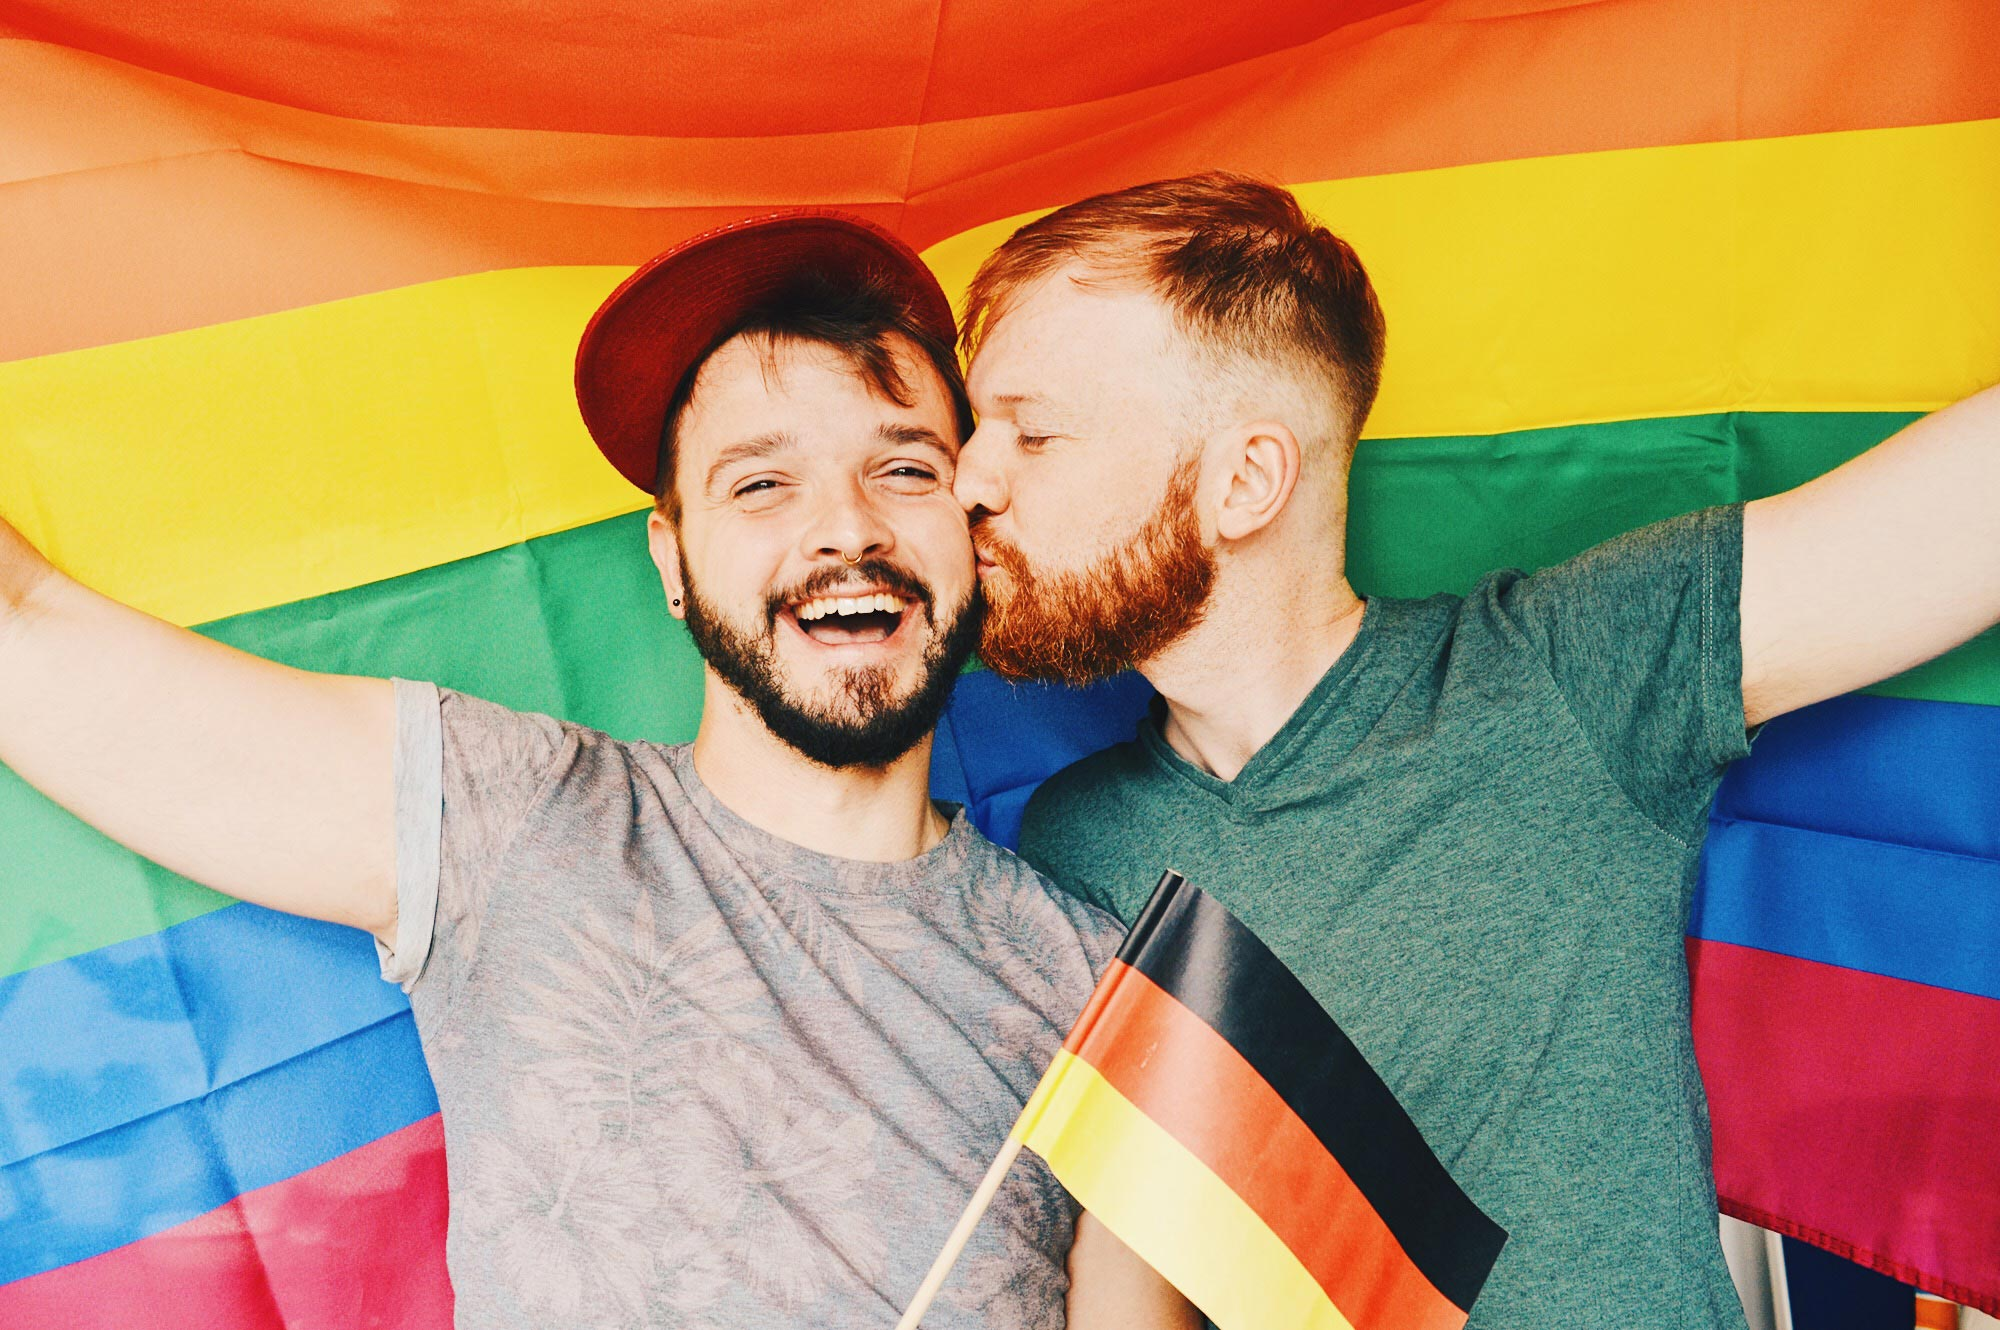 CSD Kalender Deutschland 2018 Gay Pride Calendar Germany 2018 Gay Couple celebrates equality for Germany Same-Sex Marriage © CoupleofMen.com